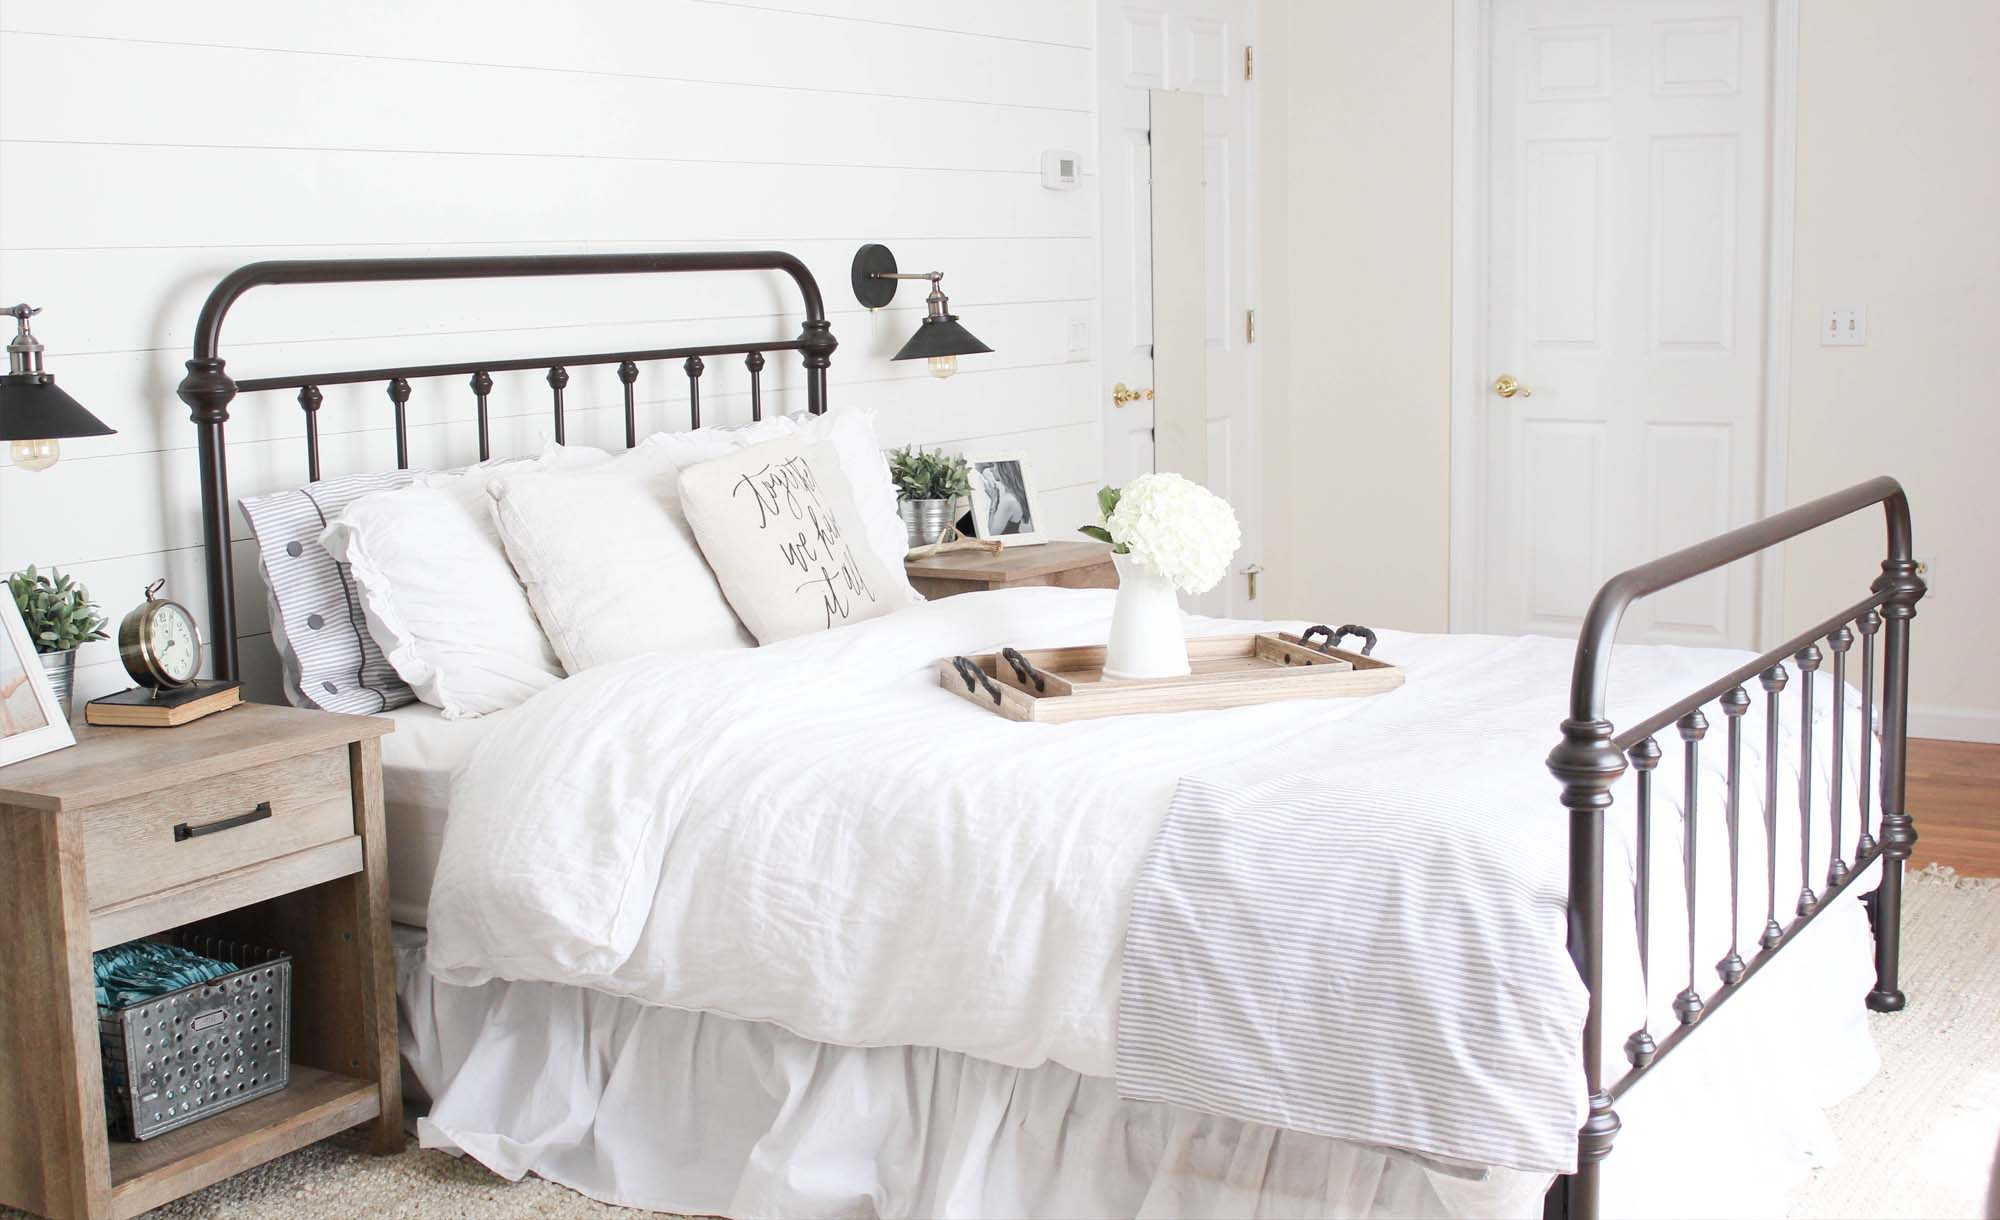 Modern farmhouse style bedroom with shiplap painted Alabaster white by Sherwin Williams.